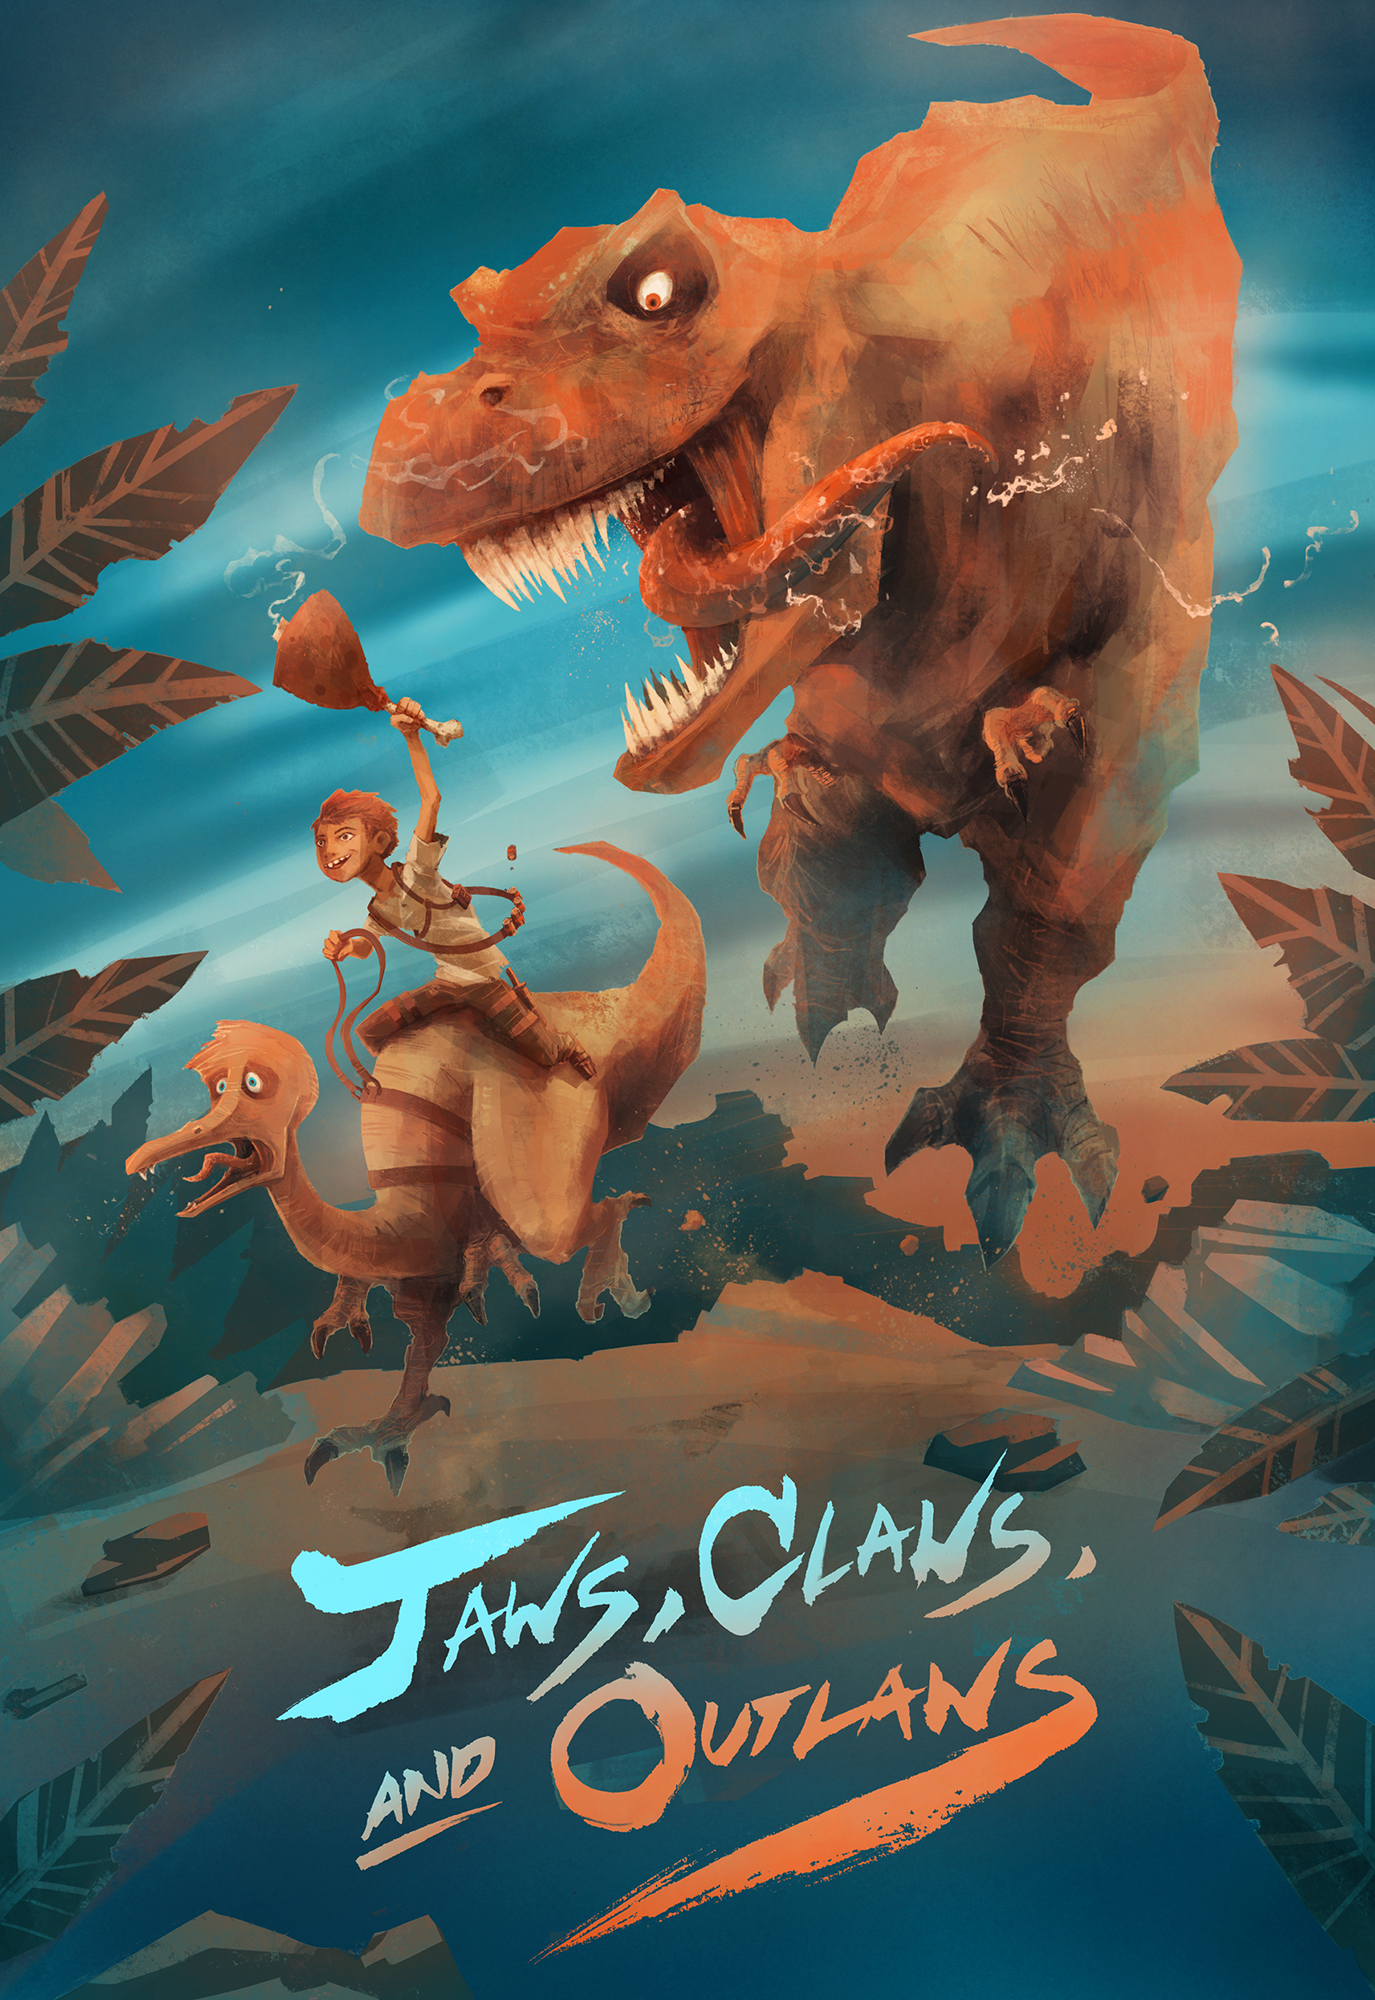 061615_Jaws_Claws_And_Outlaws_2.png